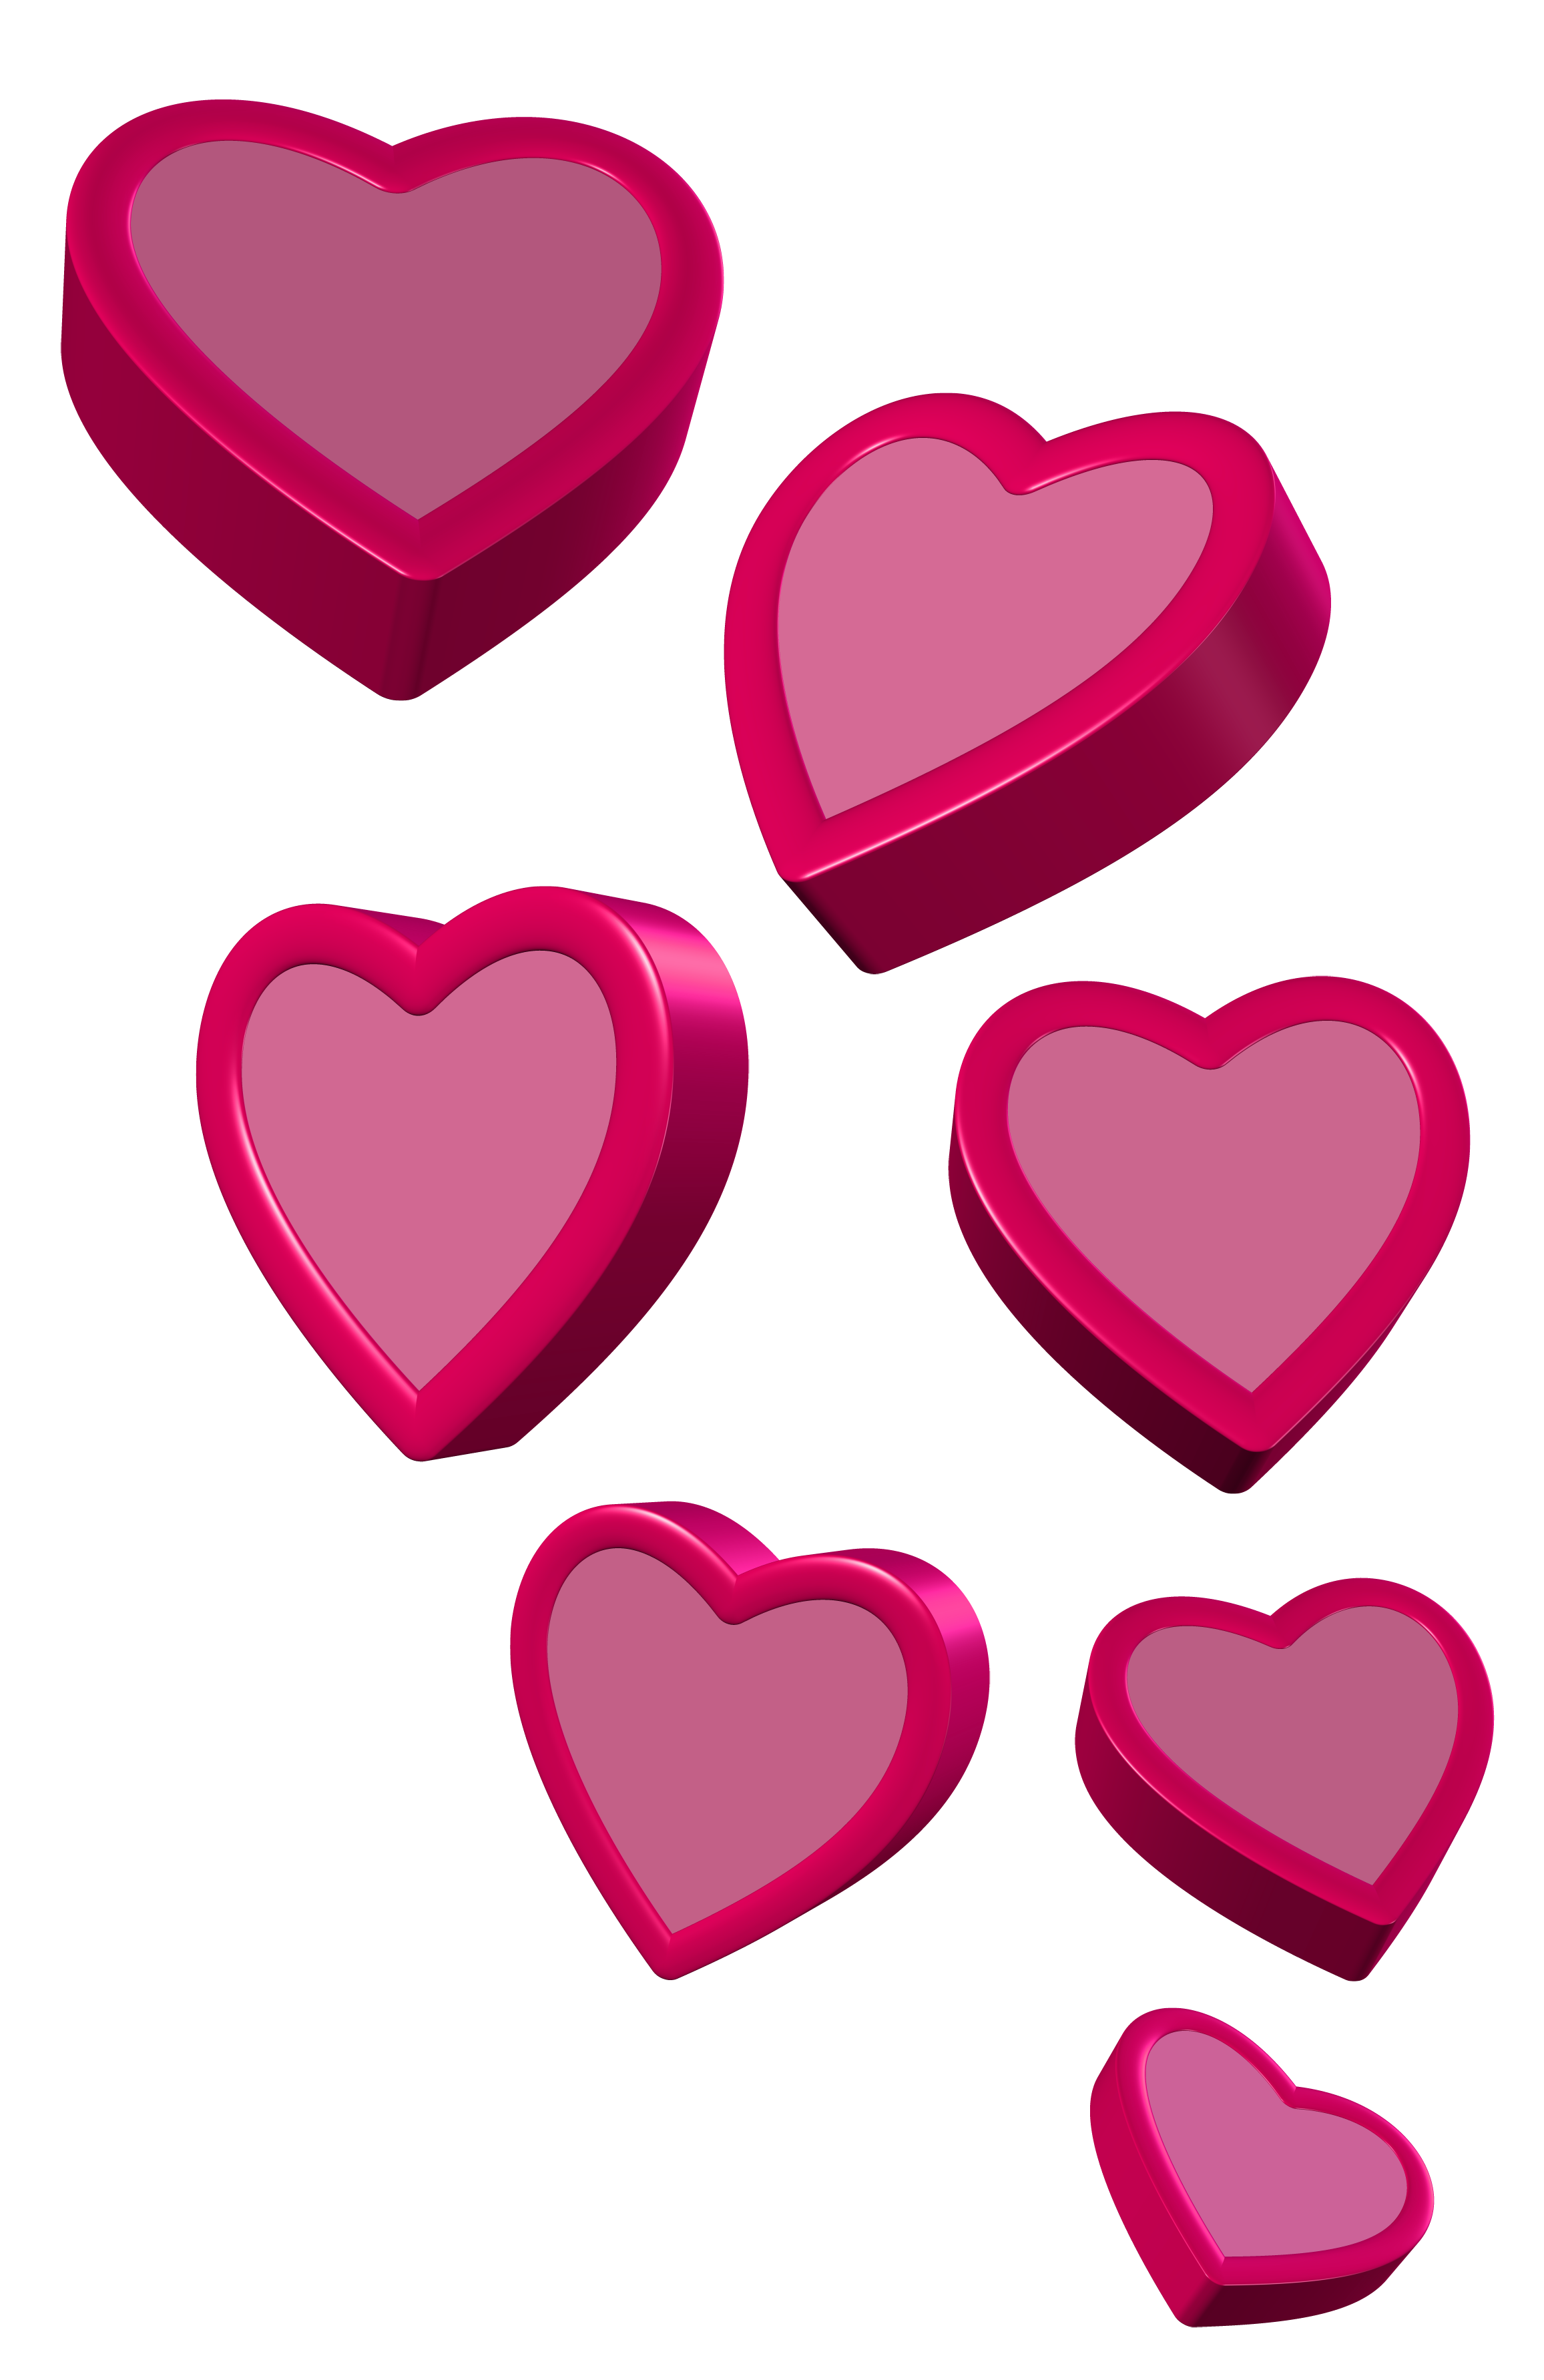 Heart stamp clipart picture free Hearts Image From Gallery Yopriceville Var Albums Free Clipart picture free